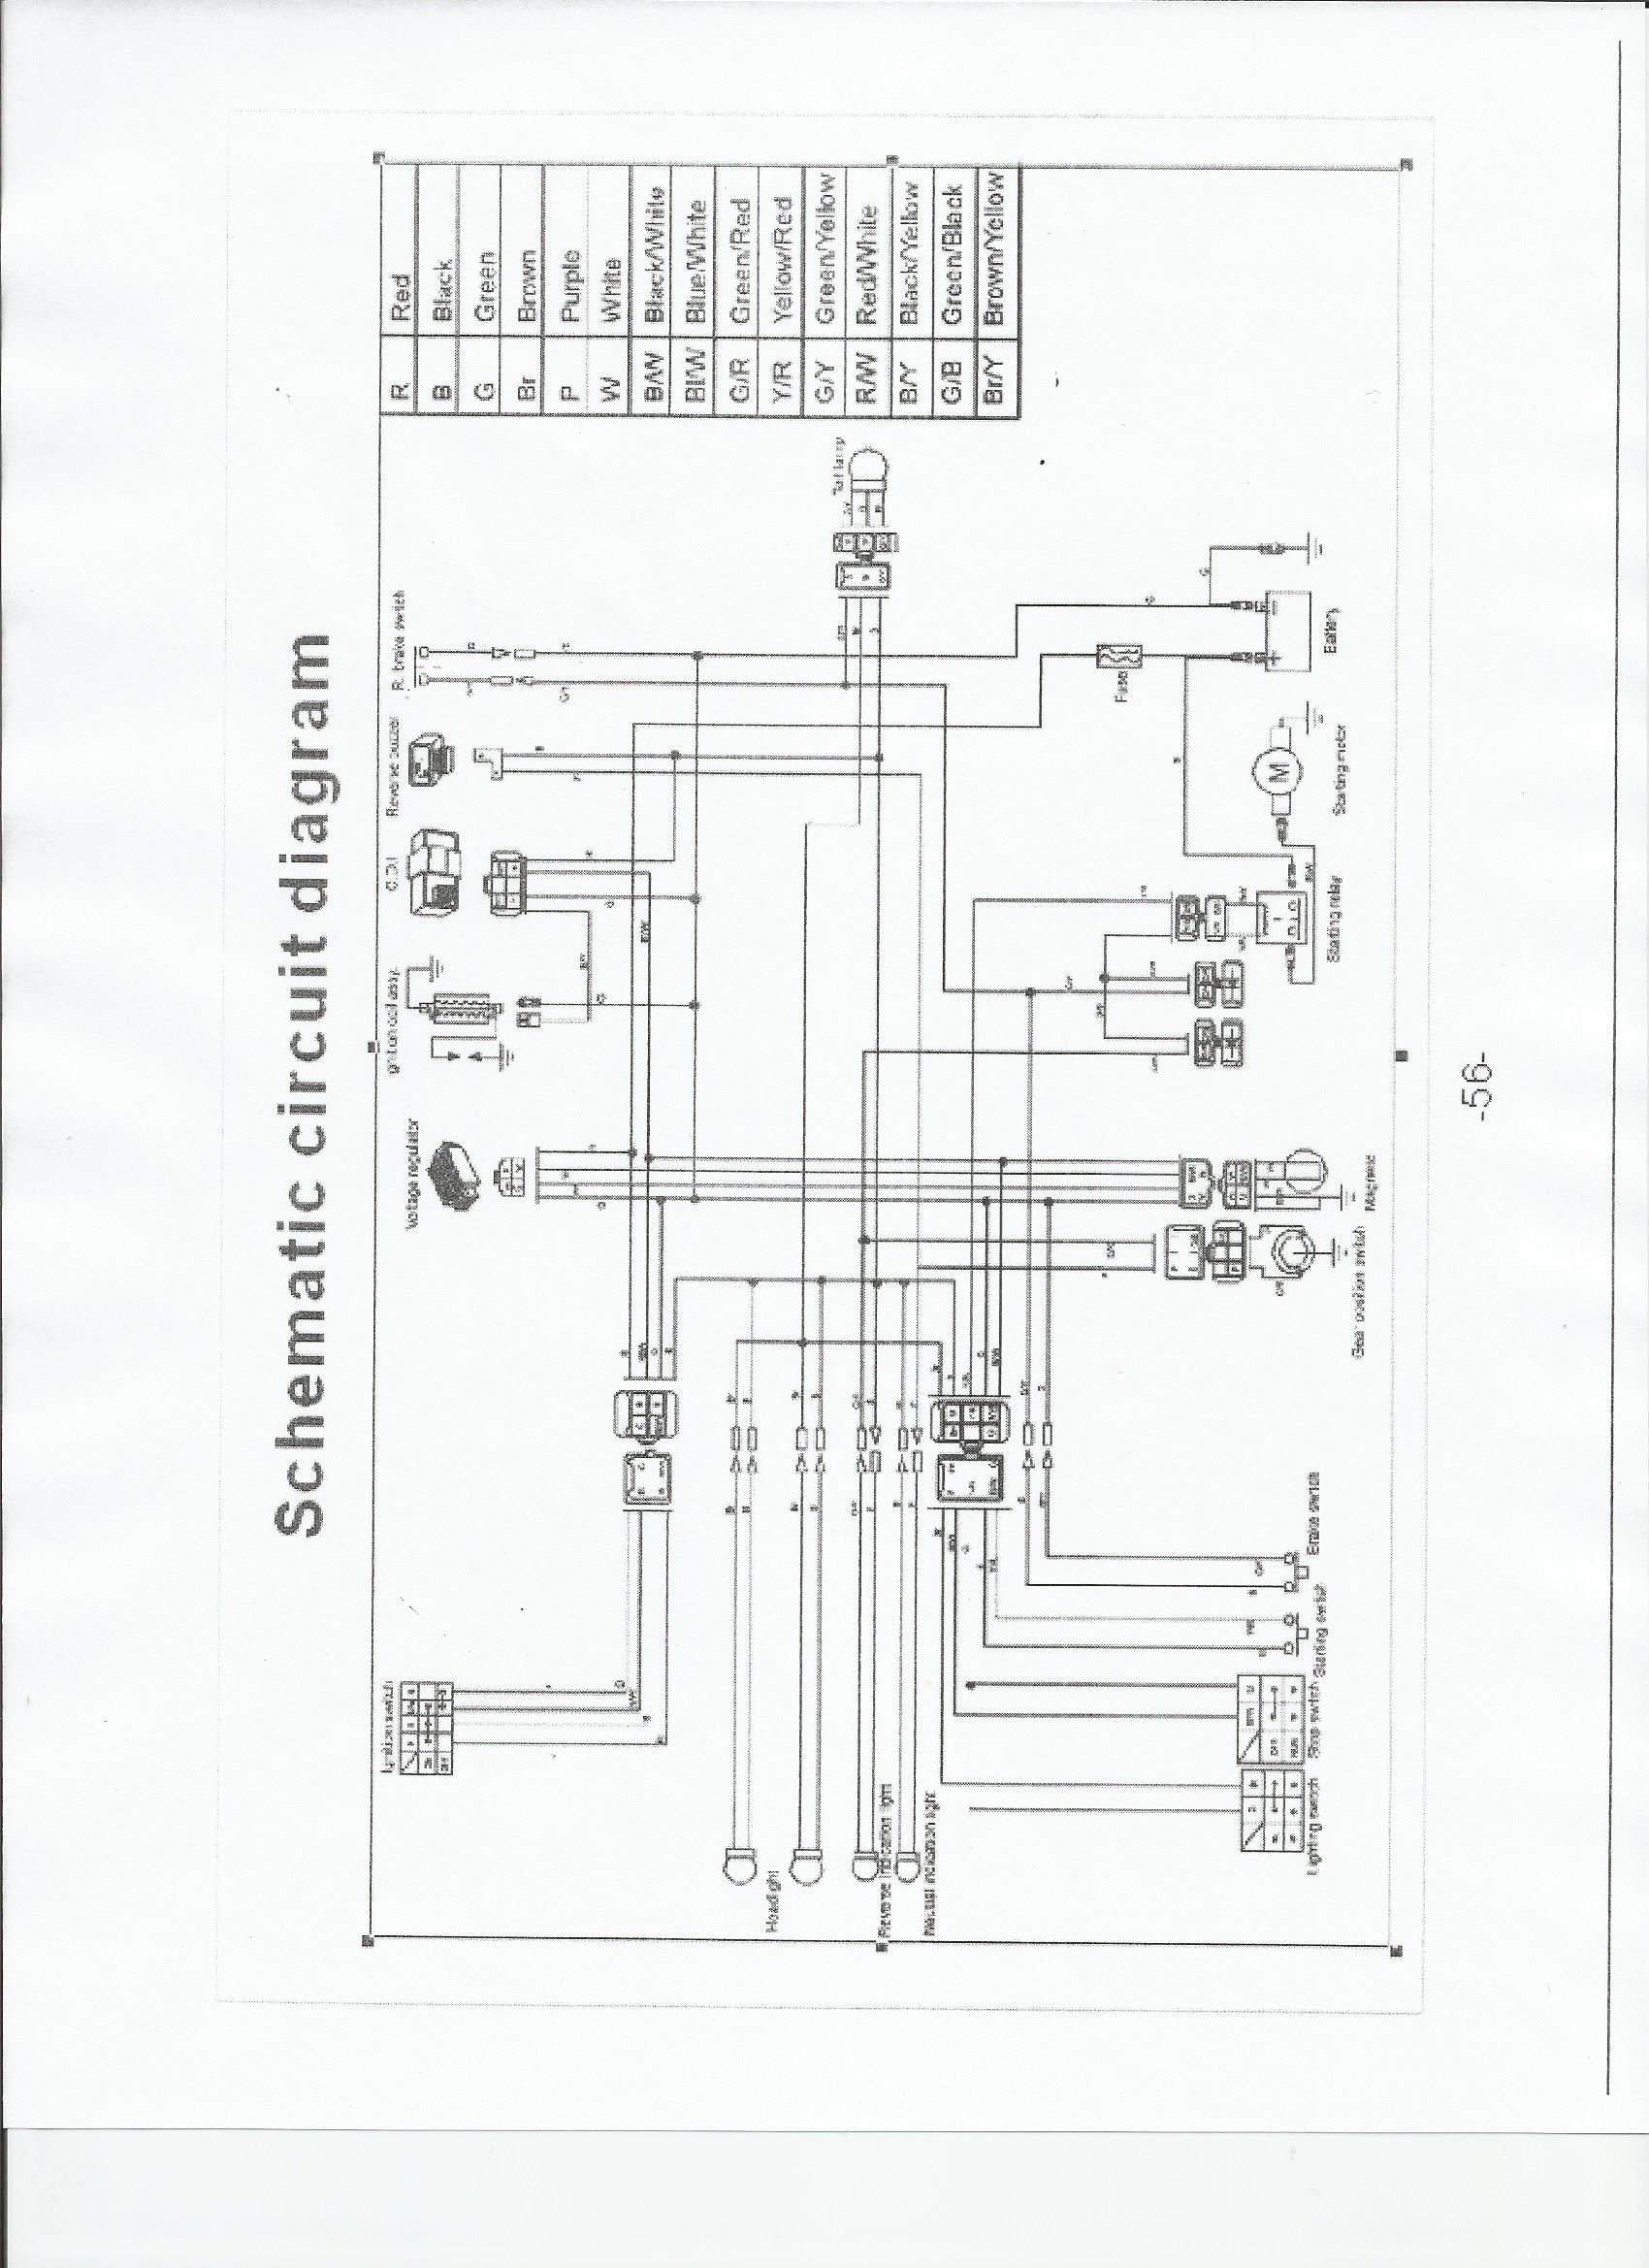 taotao mini and youth atv wiring schematic  u2013 familygokarts Tao Tao ATV Wiring Diagram tao tao wiring schematic